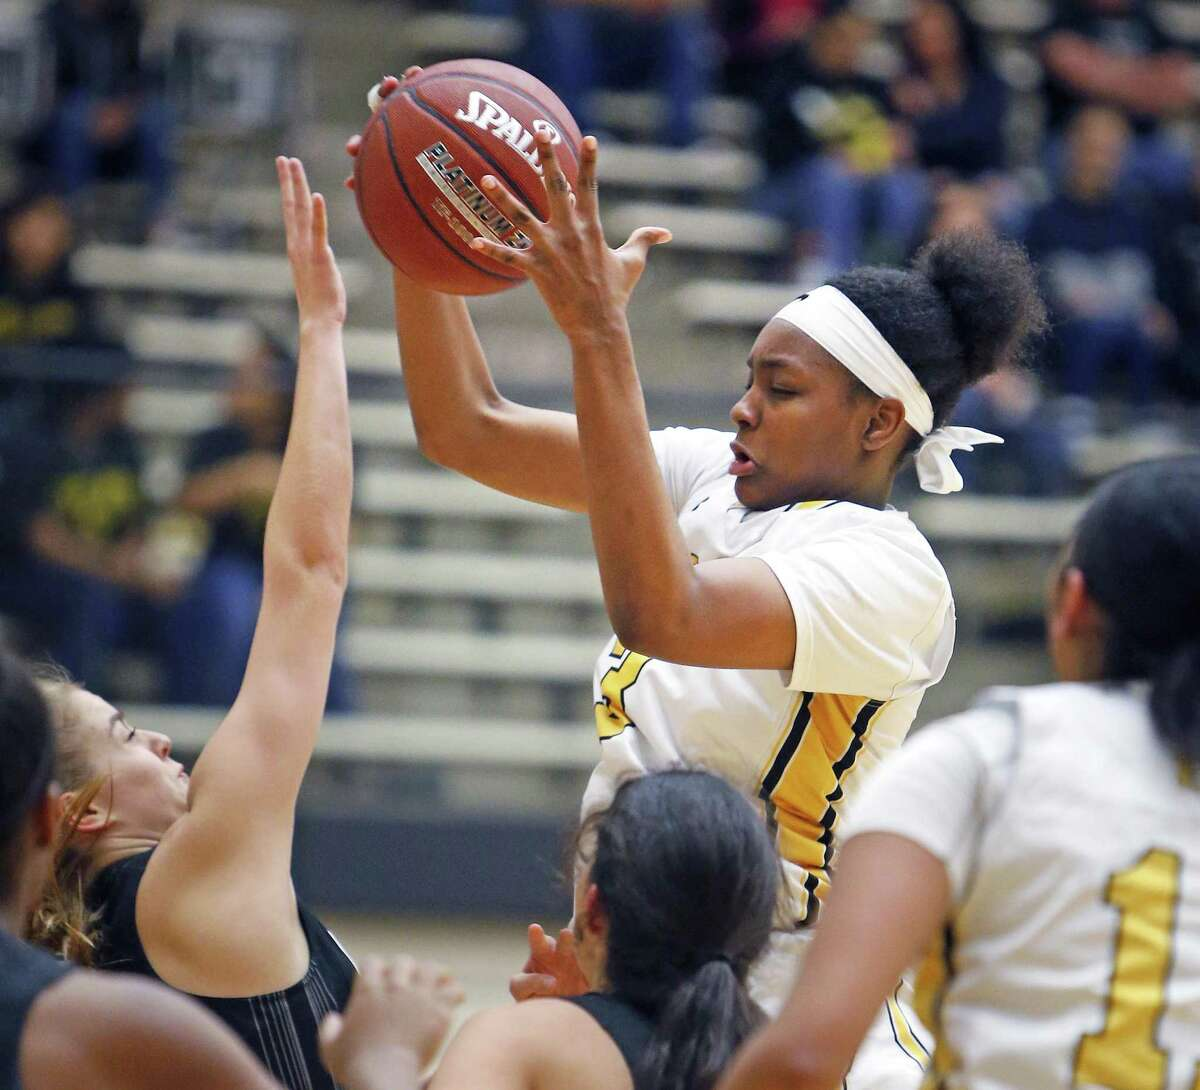 East Centrals?' Nalyssa Smith (C) grabs a lob and put into two against Clark from the Class 6A third-round girls high school basketball game between Clark and East Central on Tuesday, February 20, 2018